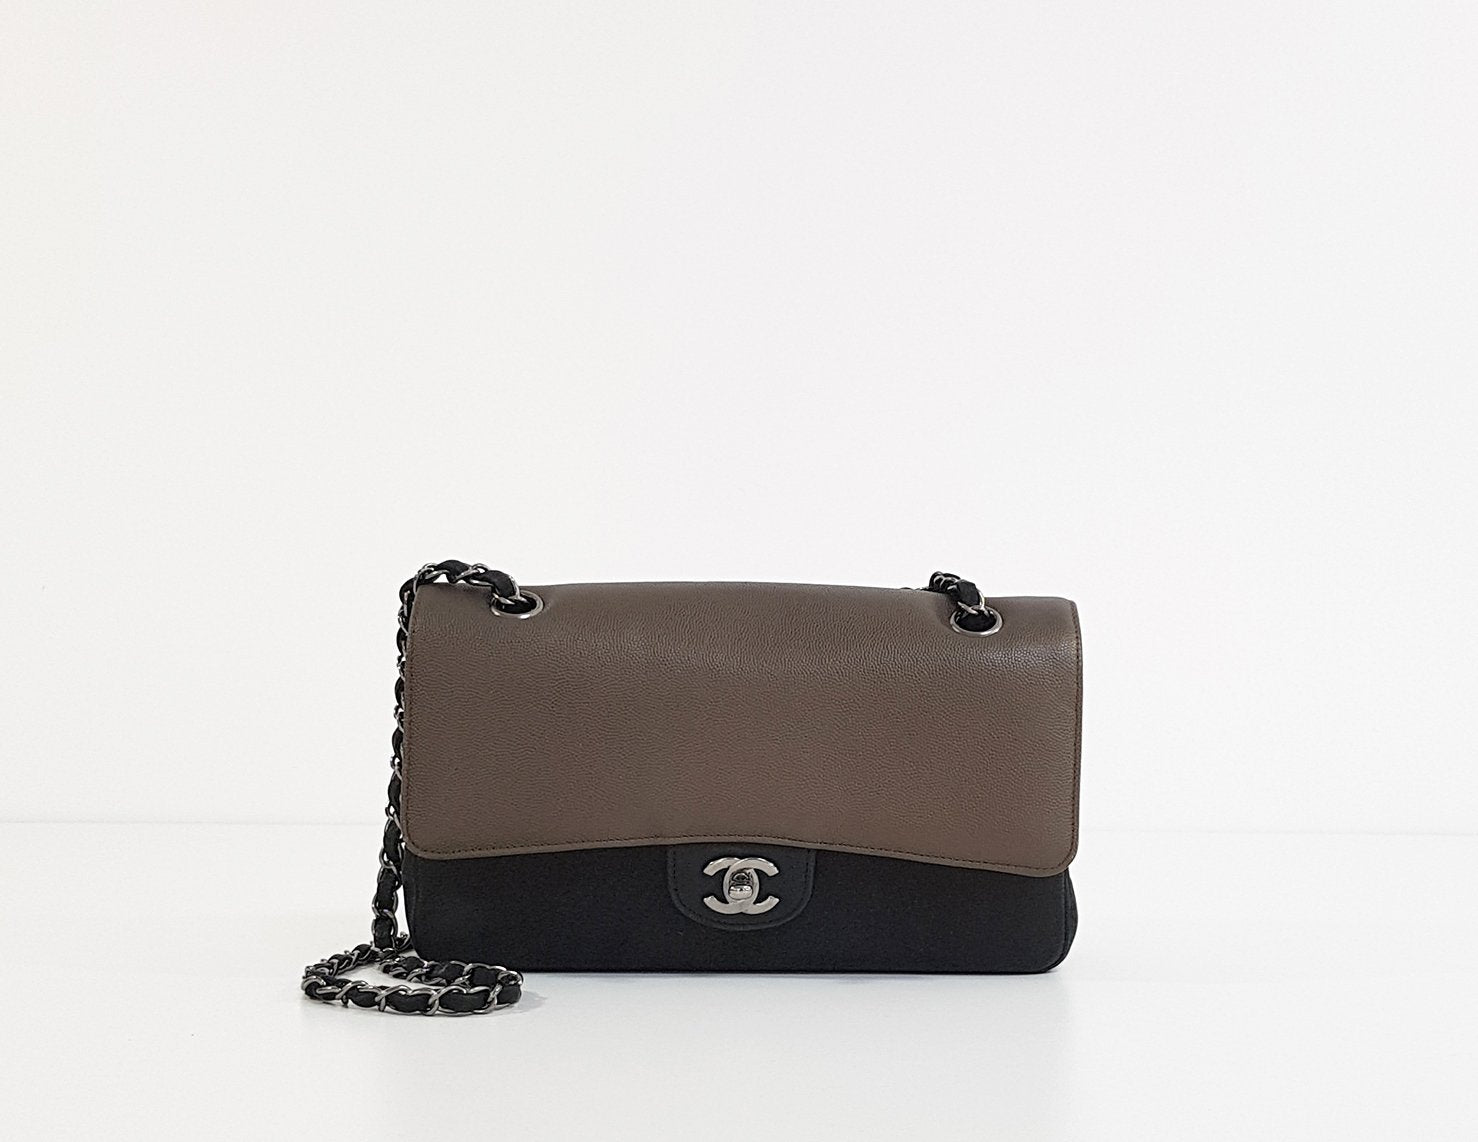 Sac Timeless Chanel